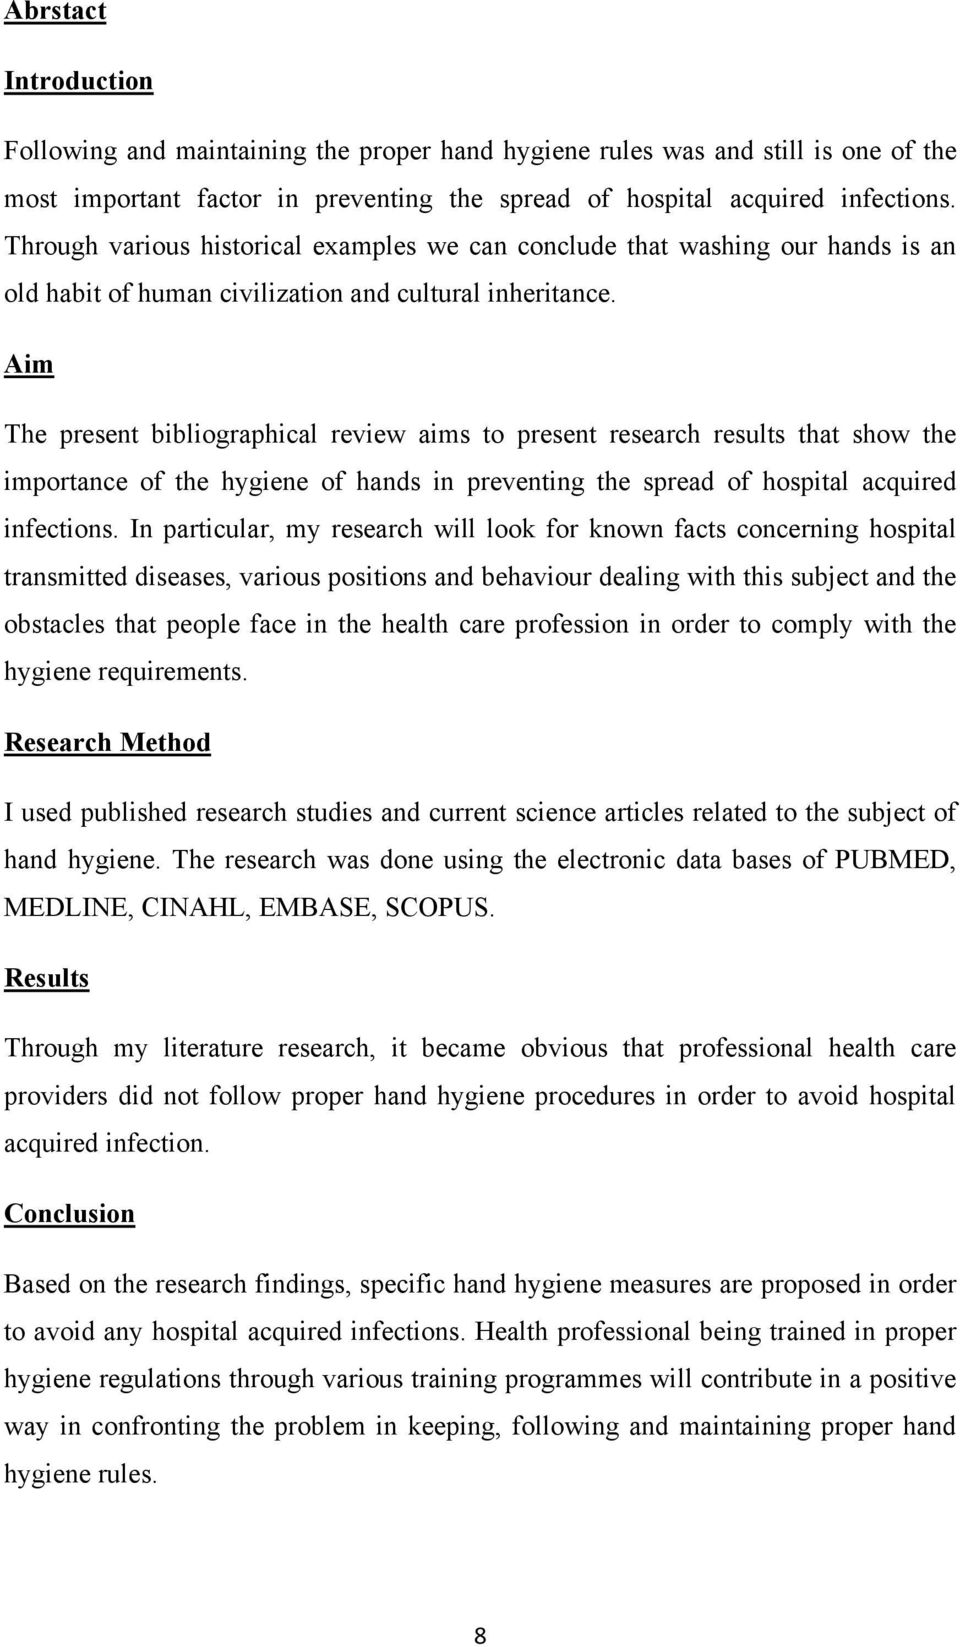 Aim The present bibliographical review aims to present research results that show the importance of the hygiene of hands in preventing the spread of hospital acquired infections.